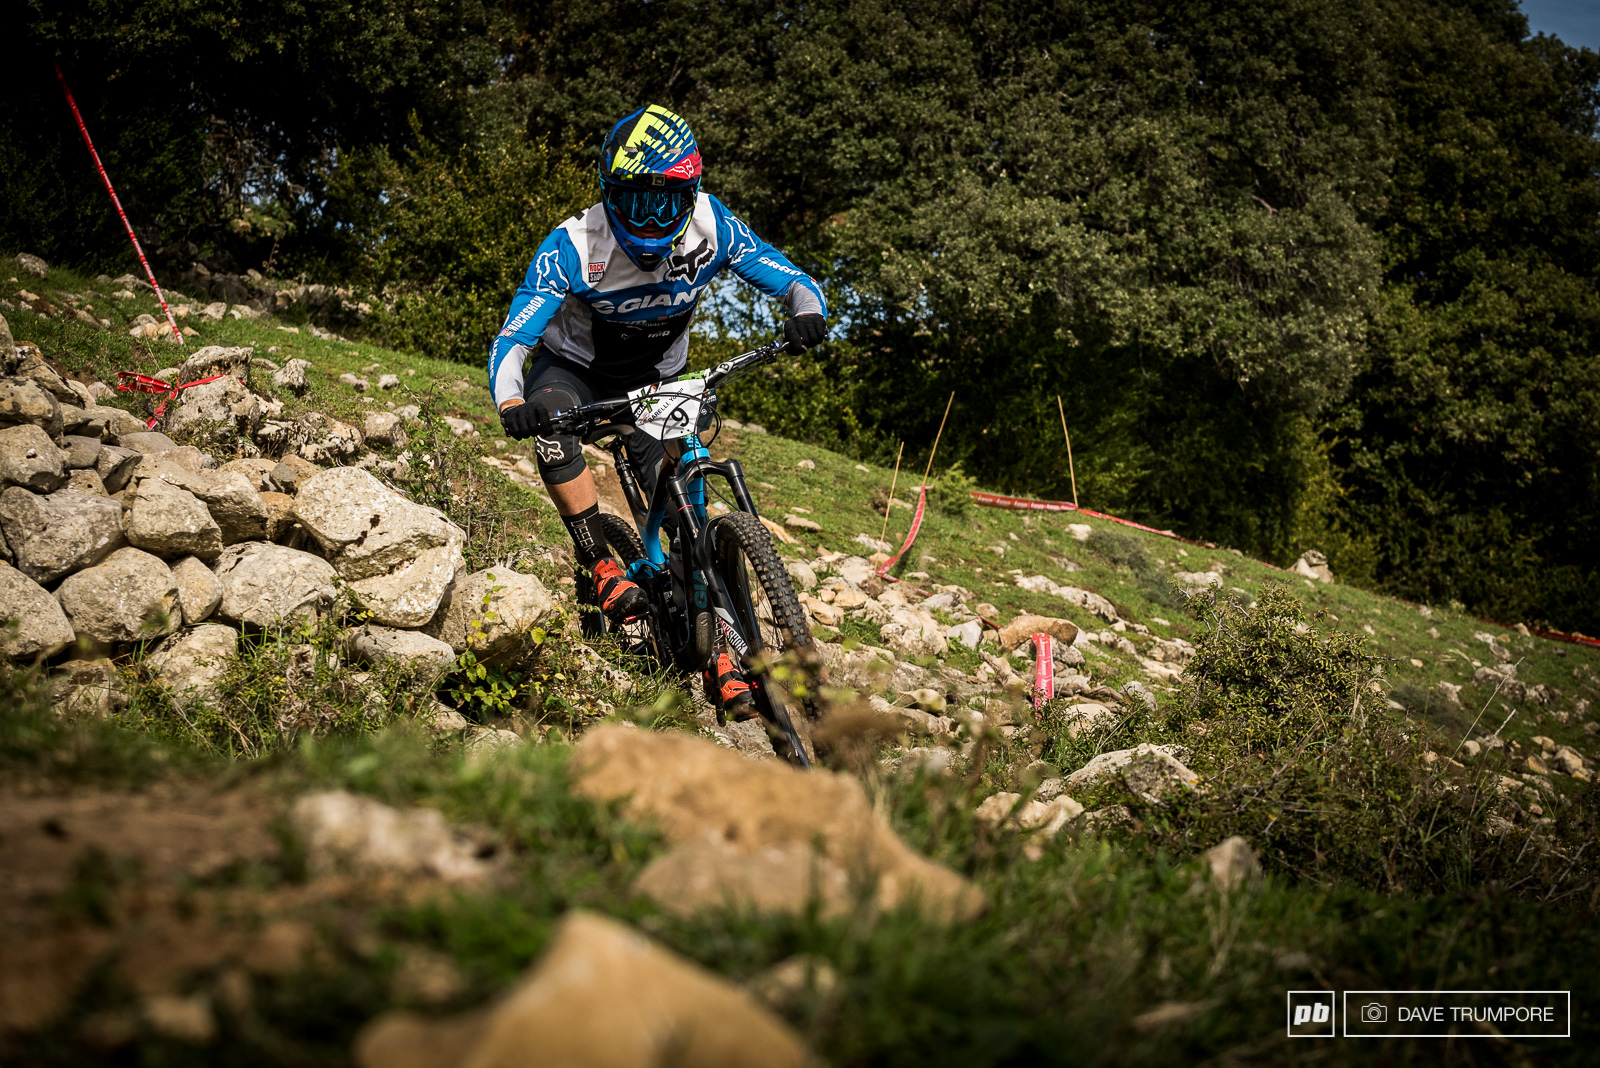 Third at the last round Yoann Barelli is looking for anothe podium here in Spain.